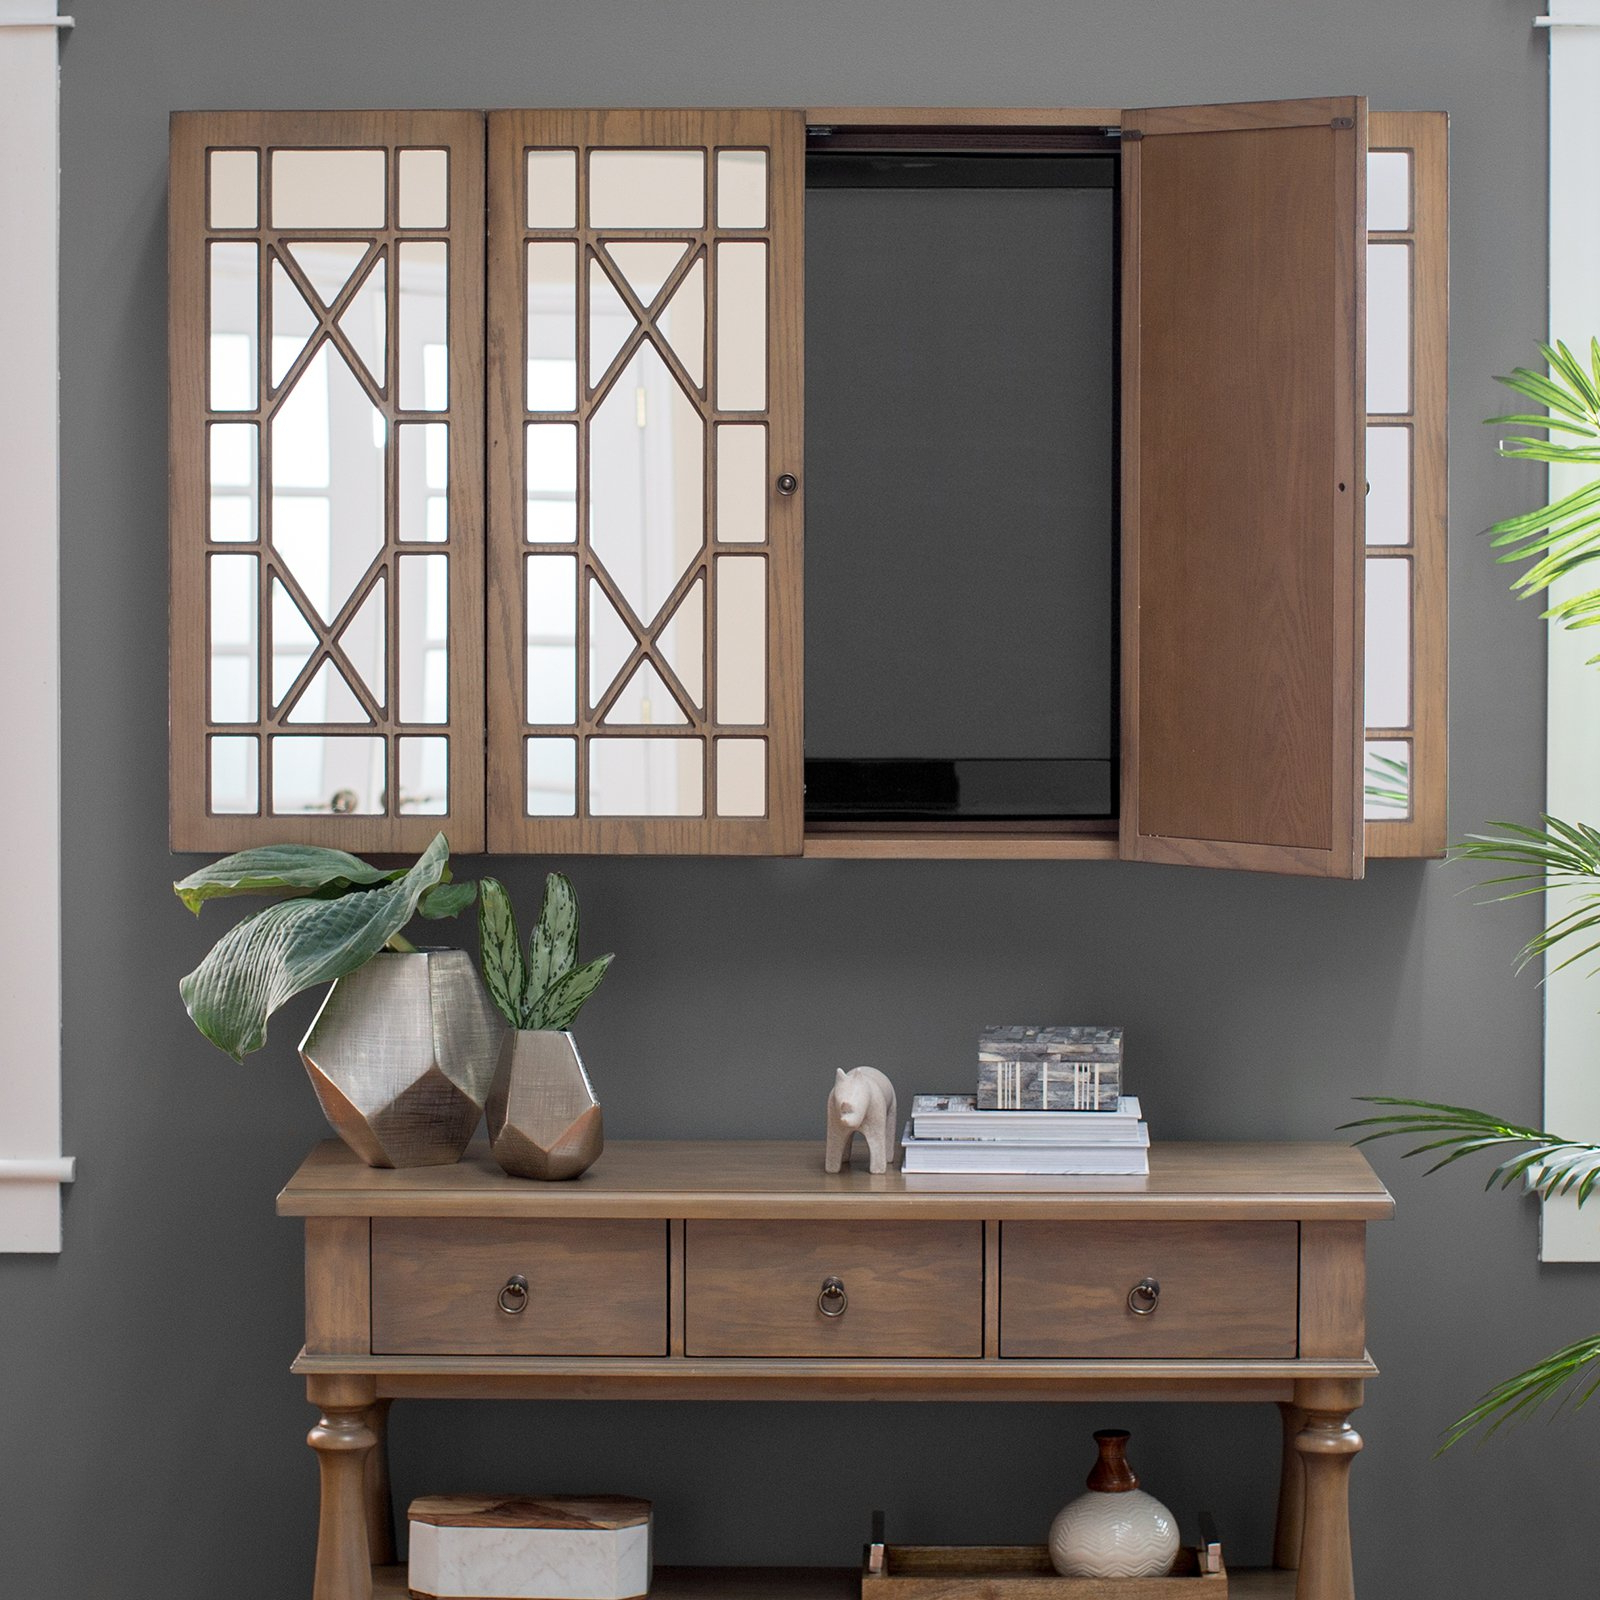 Belham Living Florence Tv Wall Cabinet – Walmart Pertaining To Widely Used Tv Wall Cabinets (Gallery 6 of 20)